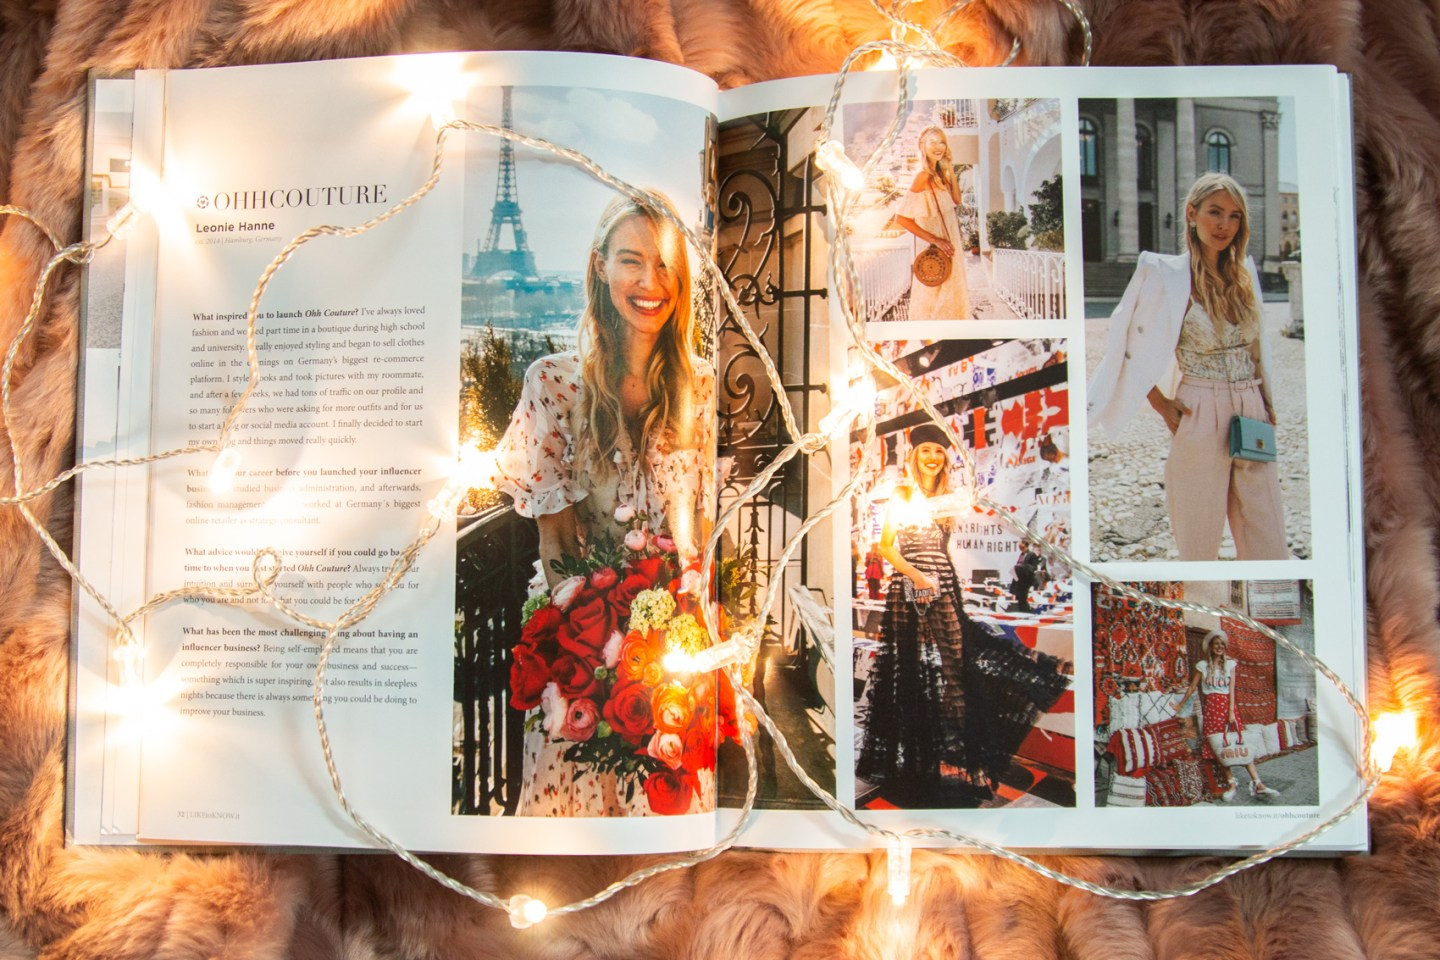 Like to Know it Book Leonie Hanne Ohh Couture